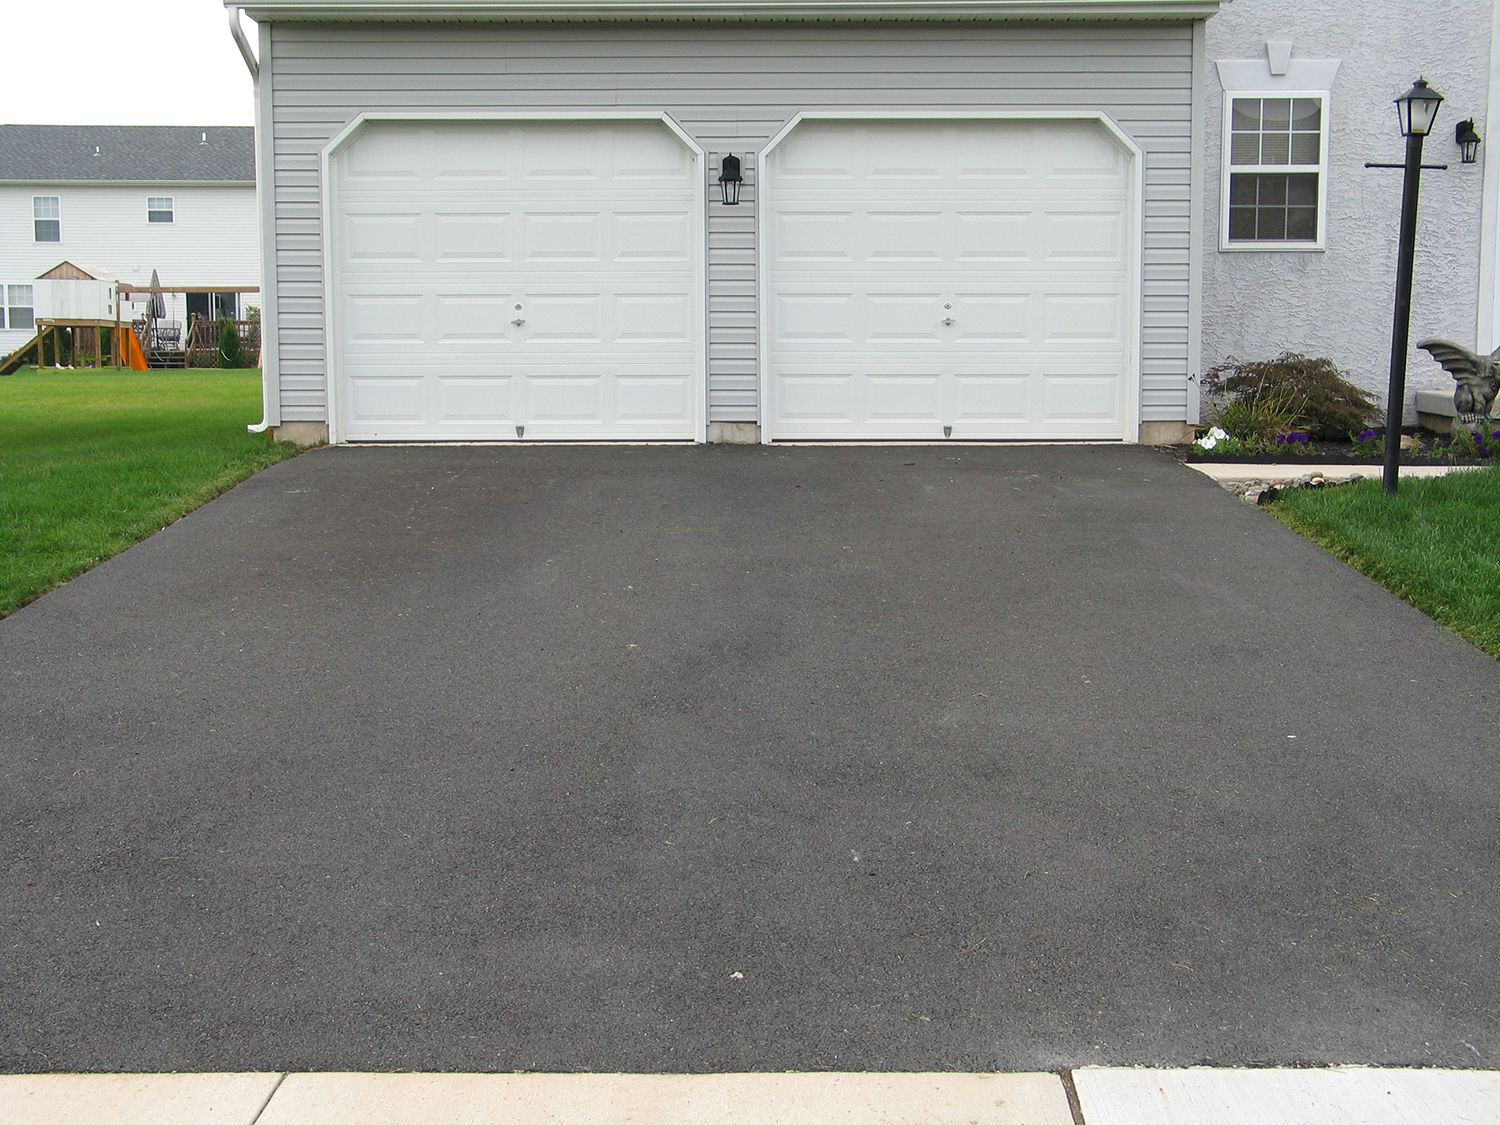 Hyperseal Rubber Driveway Coating